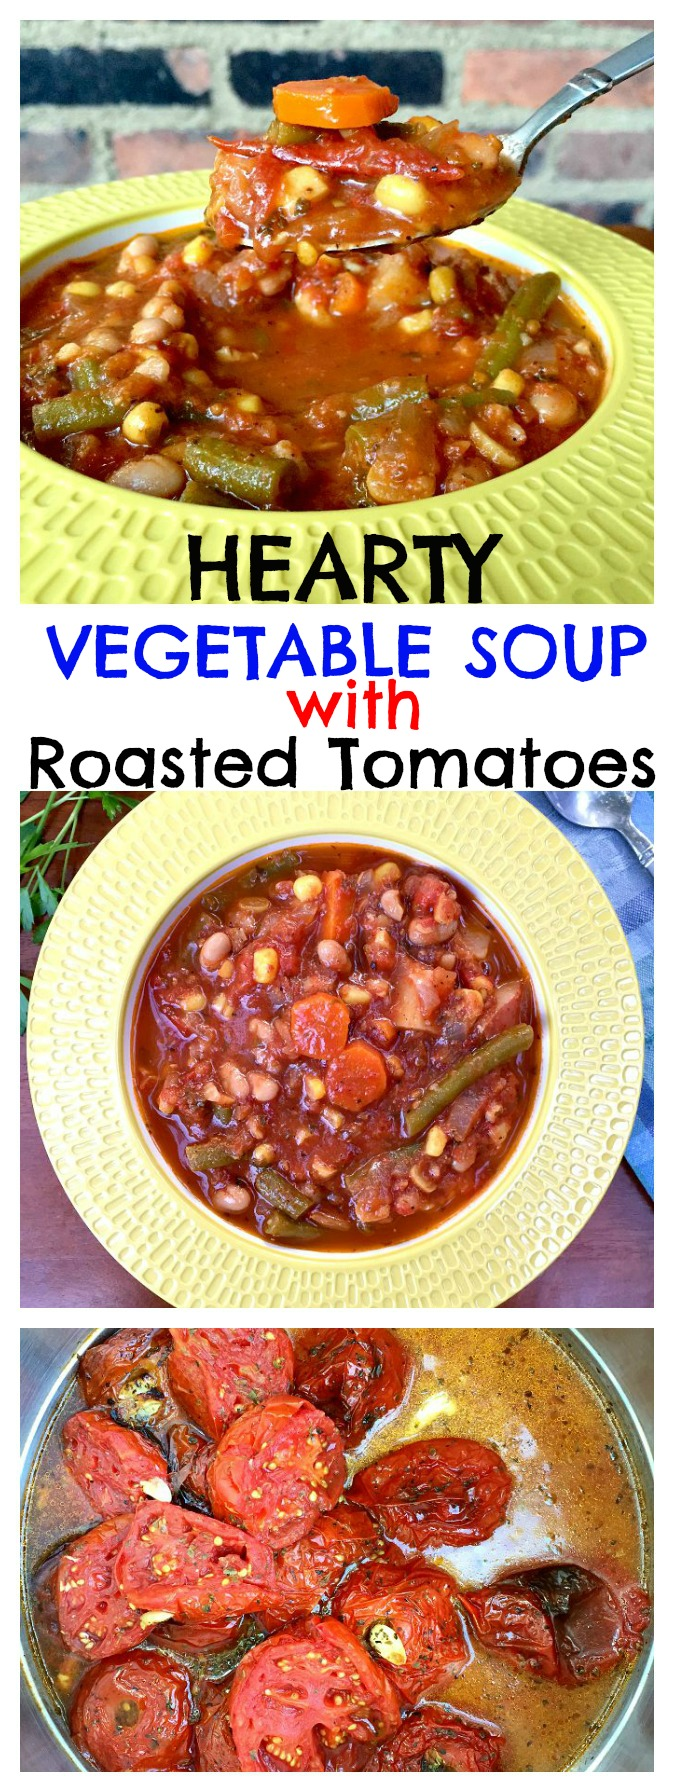 This hearty vegetable soup packs a bounty of fresh produce into one dish. The roasted tomatoes bring depth to the broth and flavor the bowl. Kick back and enjoy this satisfying, comforting and nourishing Vegetable Soup.